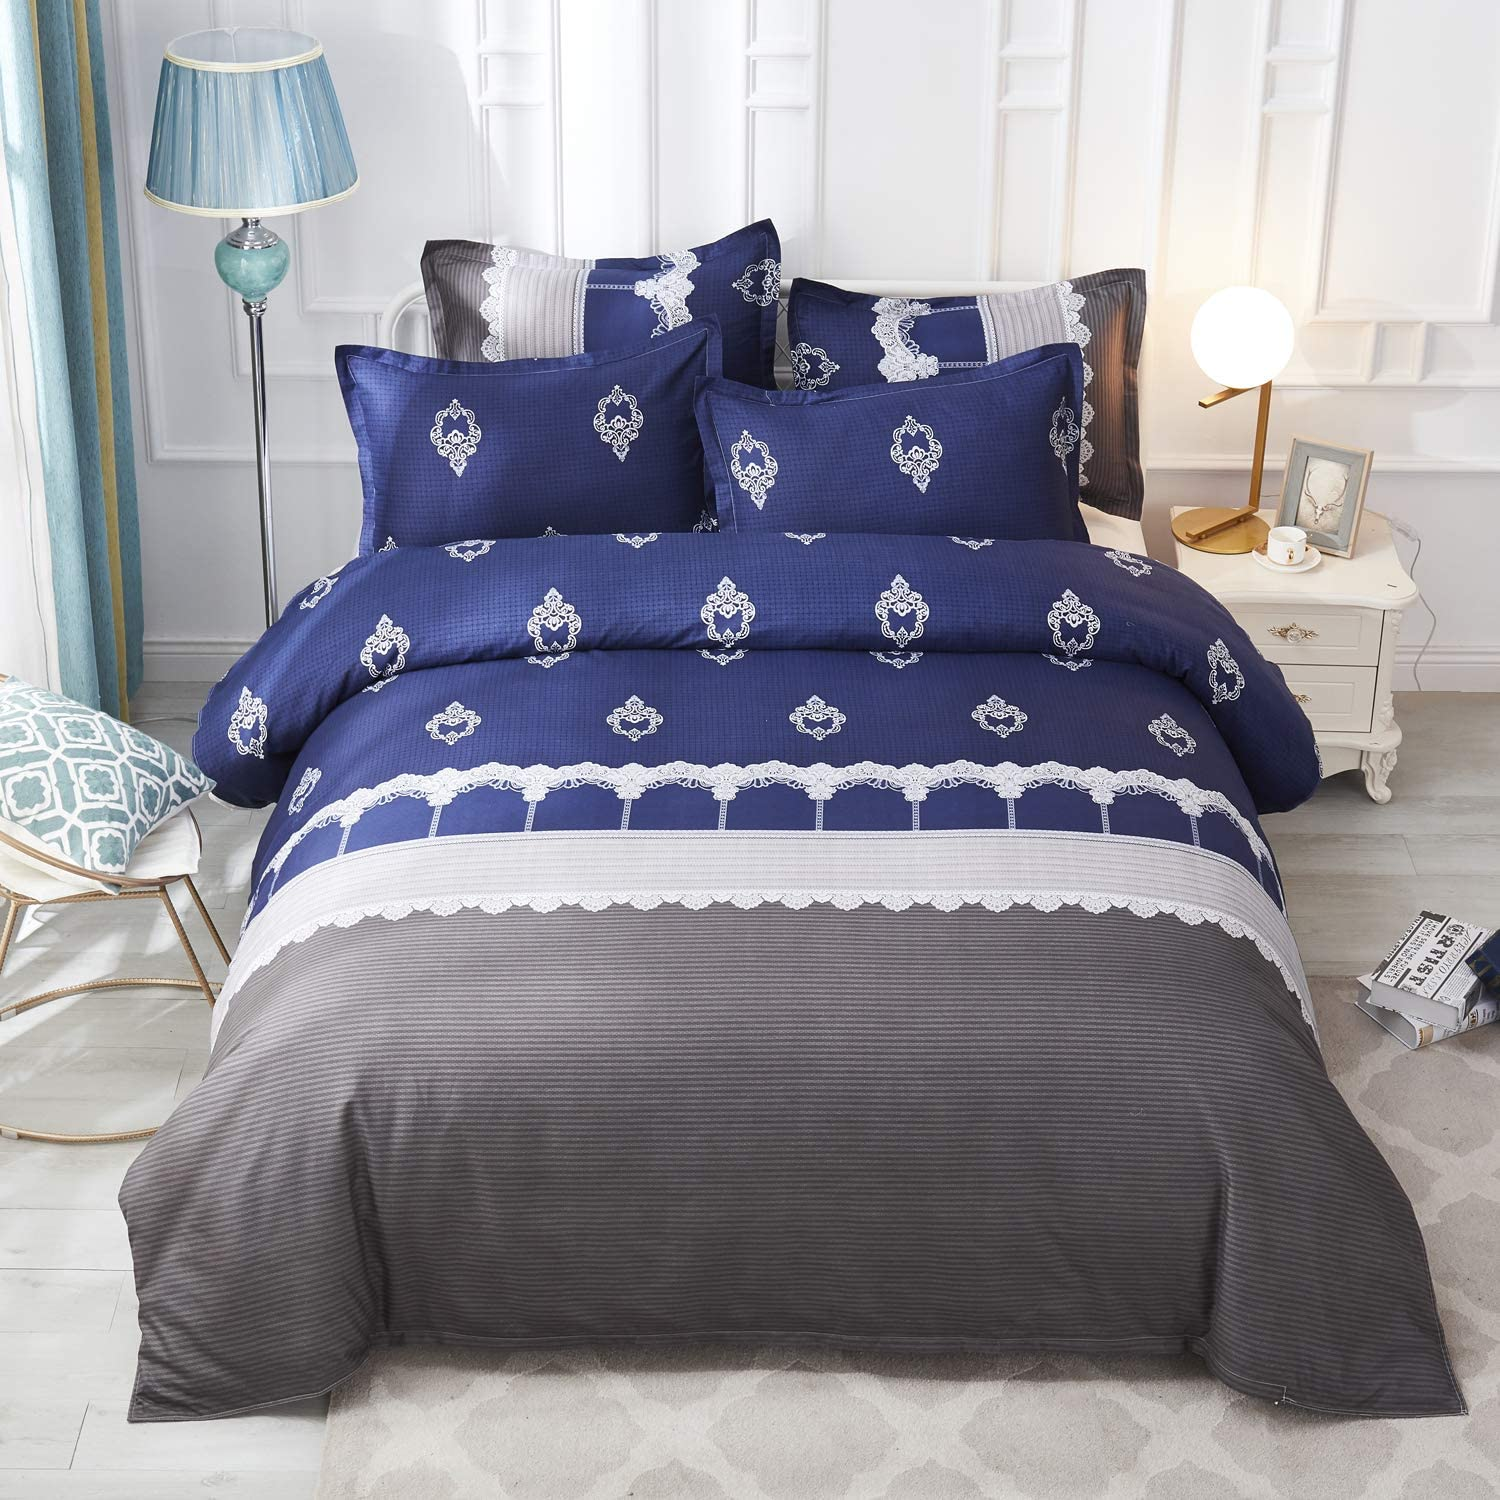 Boho Paisley Bedding, Grey Blue Damask European Pattern Comforter Covet,Soft Retro Jacquard Design Duvet Cover with Zipper Closure for Adult,Men Women,Fashion Embroidery Decor (3pcs, Queen Size)